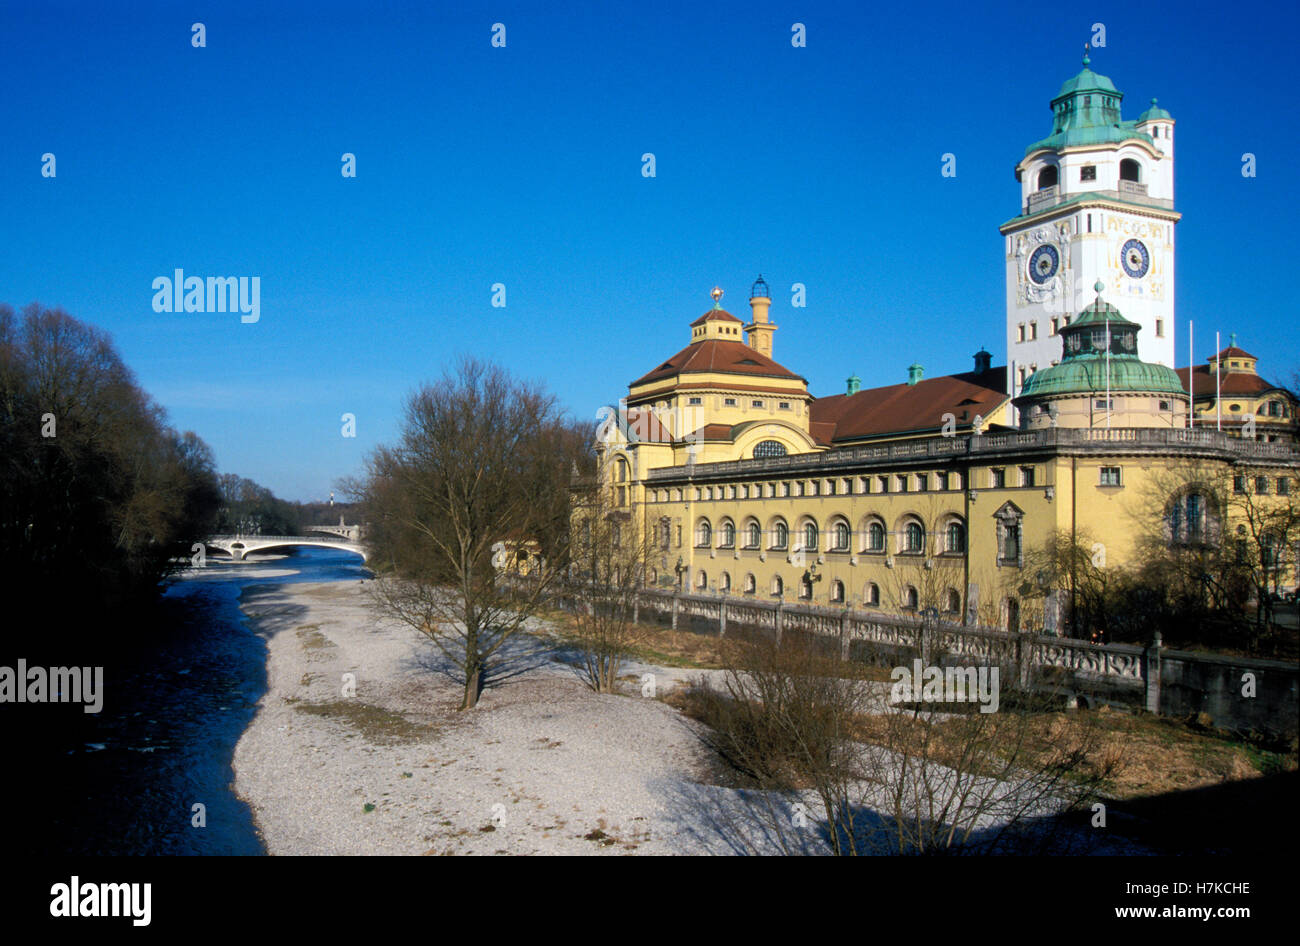 Muellersches Volksbad public swimming pool on the Isar river, Munich, Bavaria - Stock Image